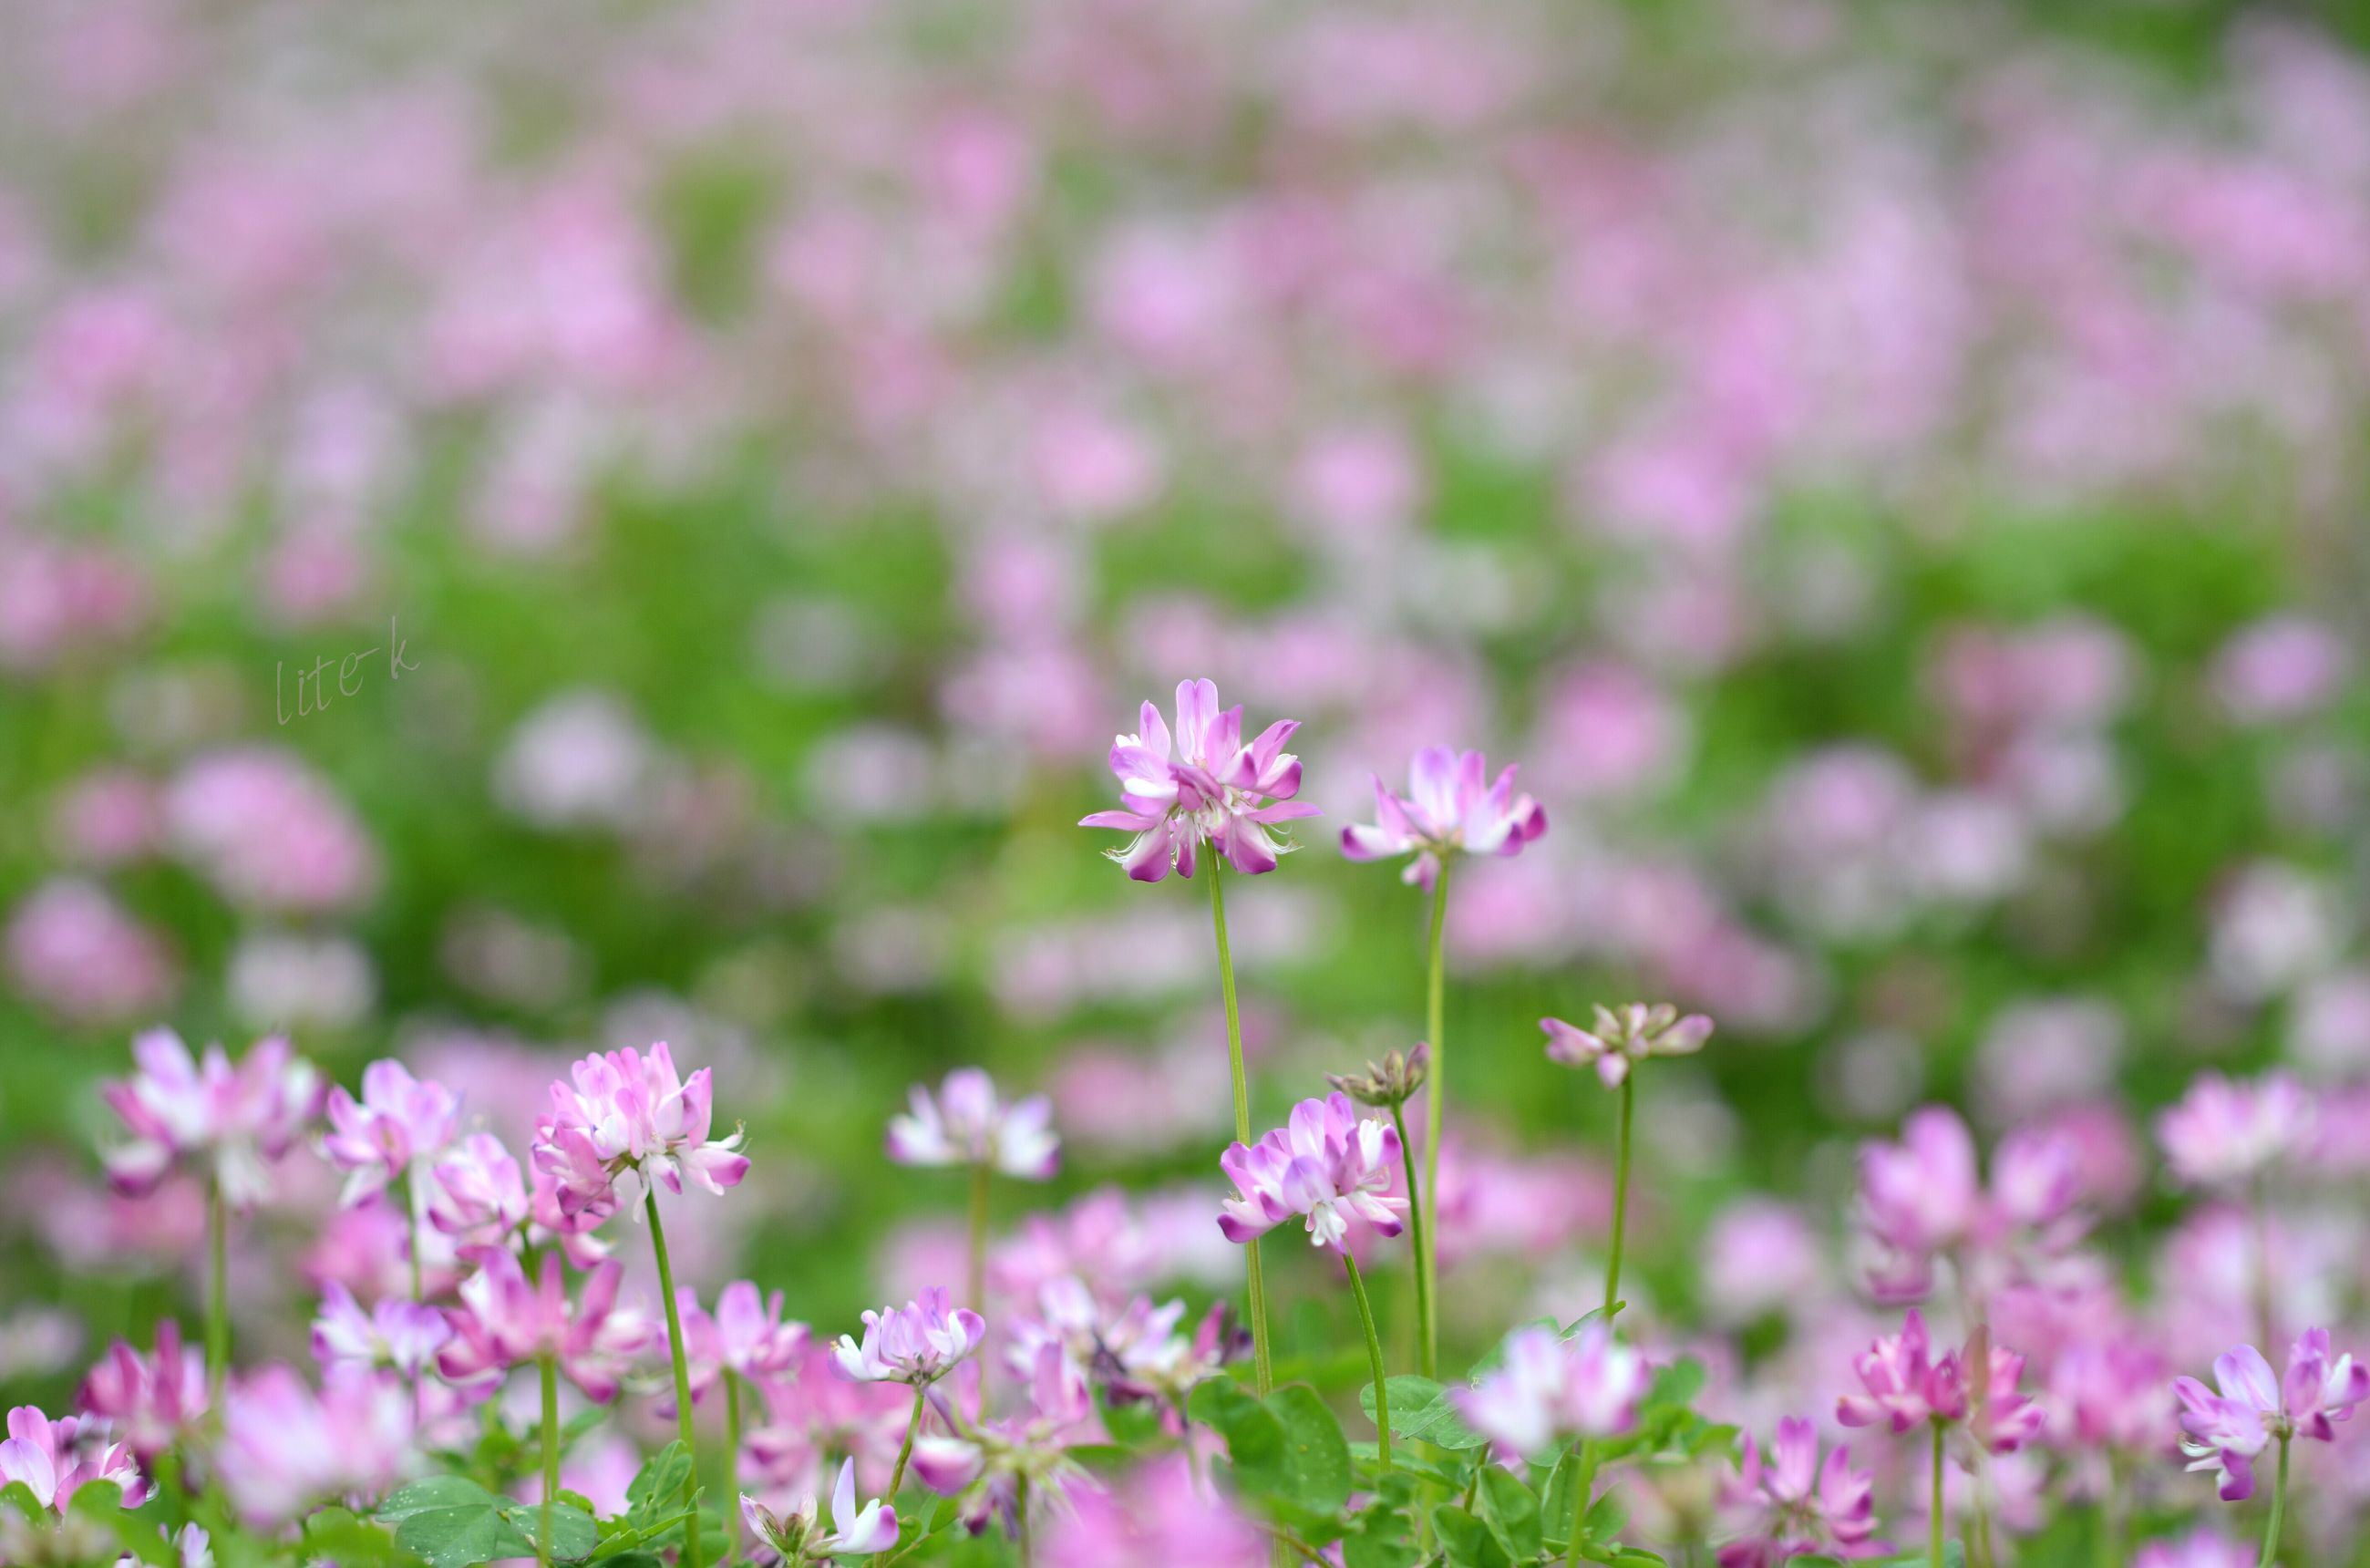 flower, freshness, fragility, growth, pink color, beauty in nature, petal, focus on foreground, purple, nature, blooming, flower head, plant, close-up, field, selective focus, in bloom, stem, outdoors, day